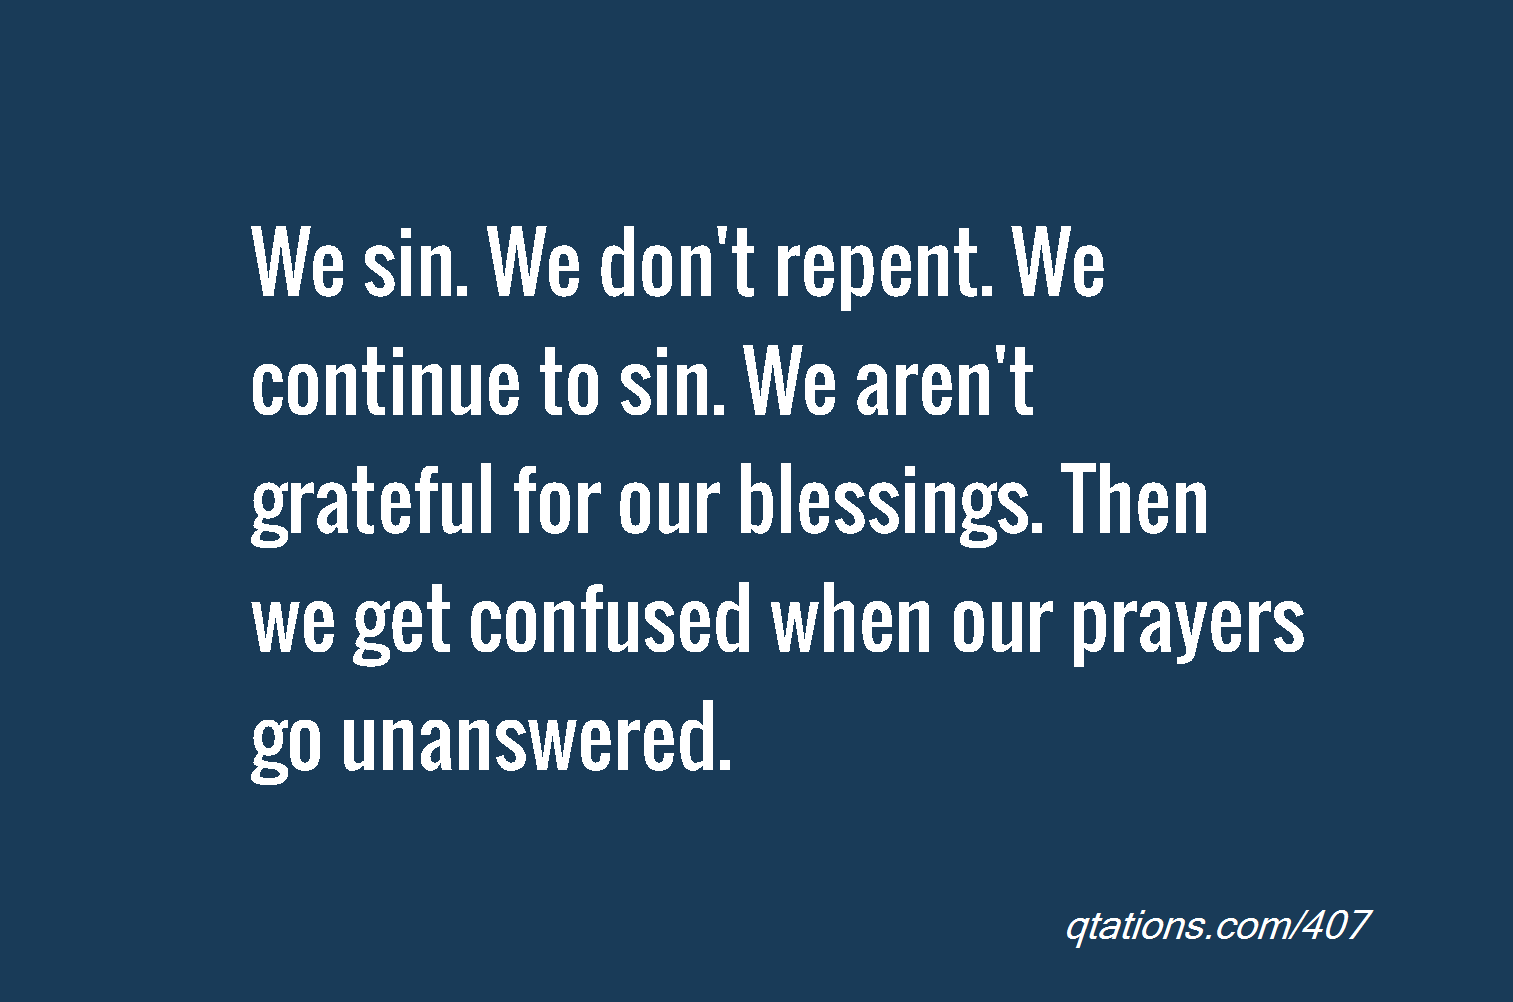 Repentance of their sins